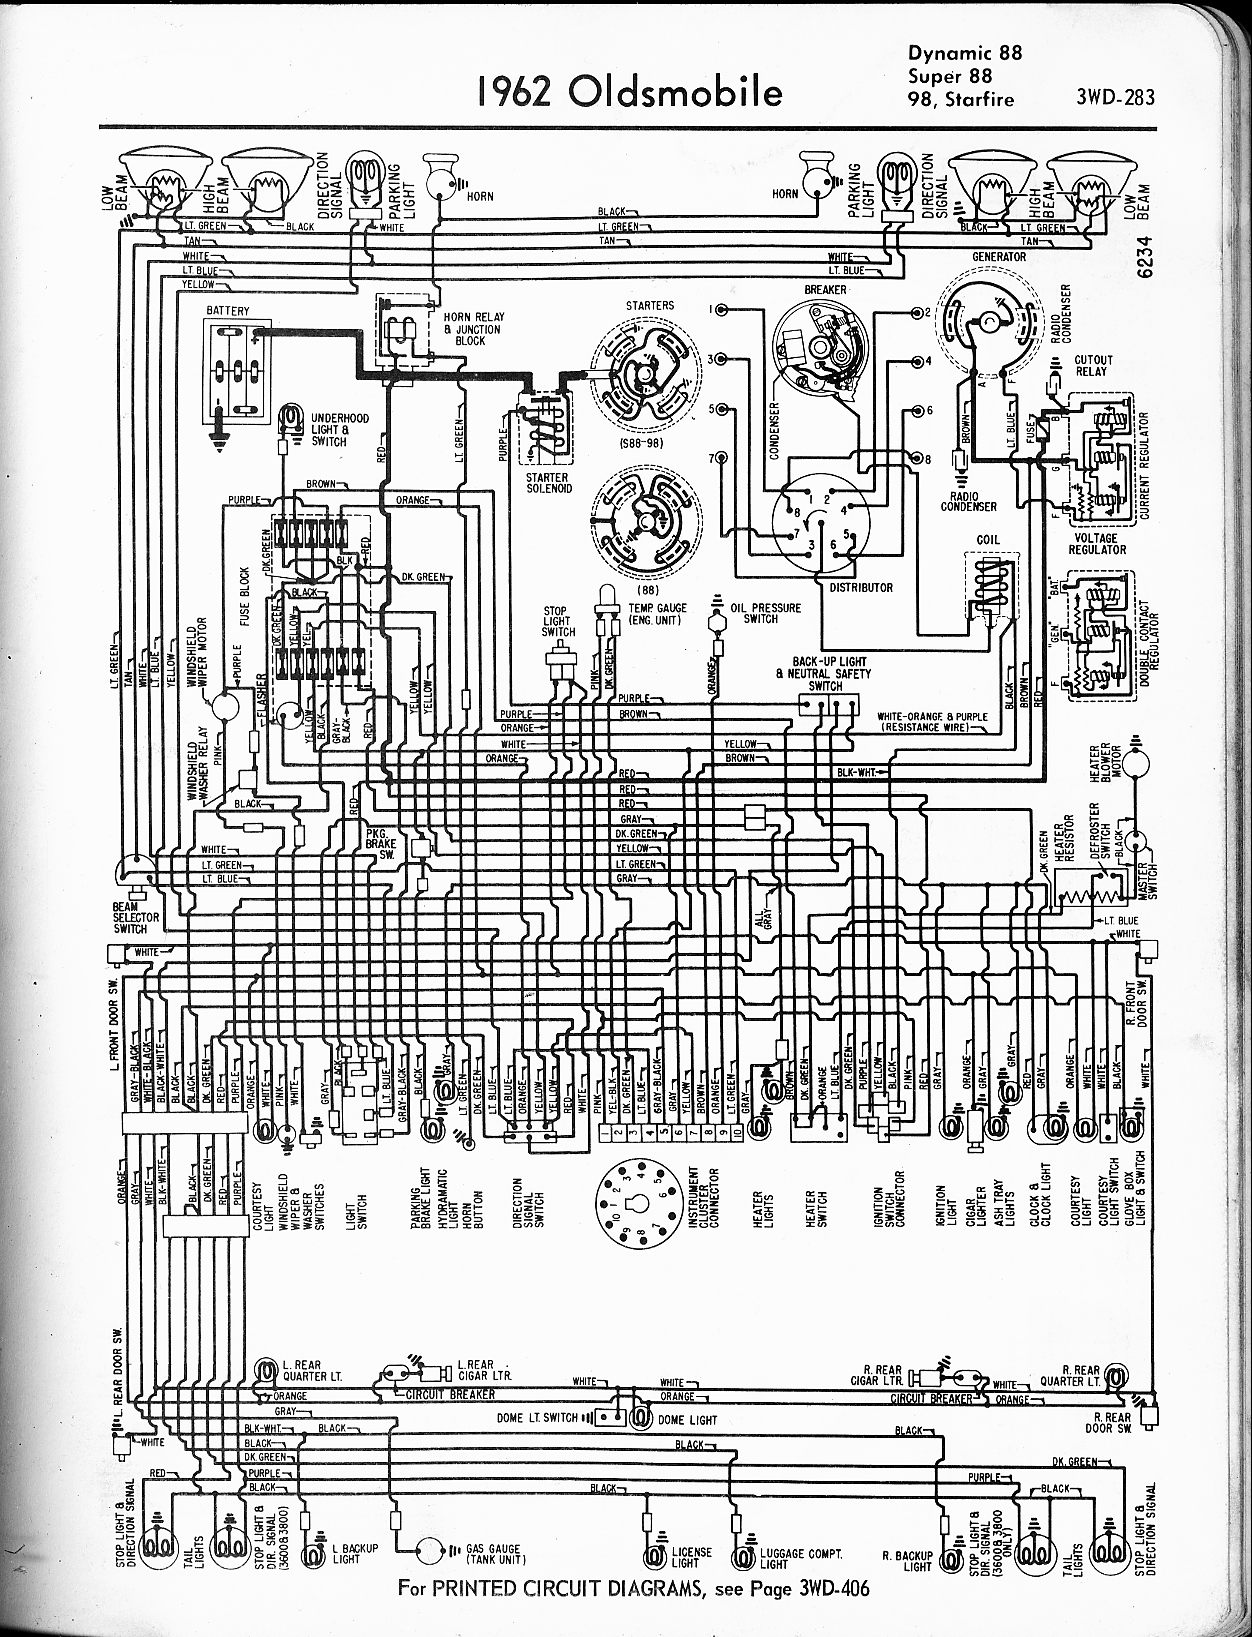 oldsmobile wiring diagrams the old car manual project 1962 dynamic 88 super 88 98 starfire